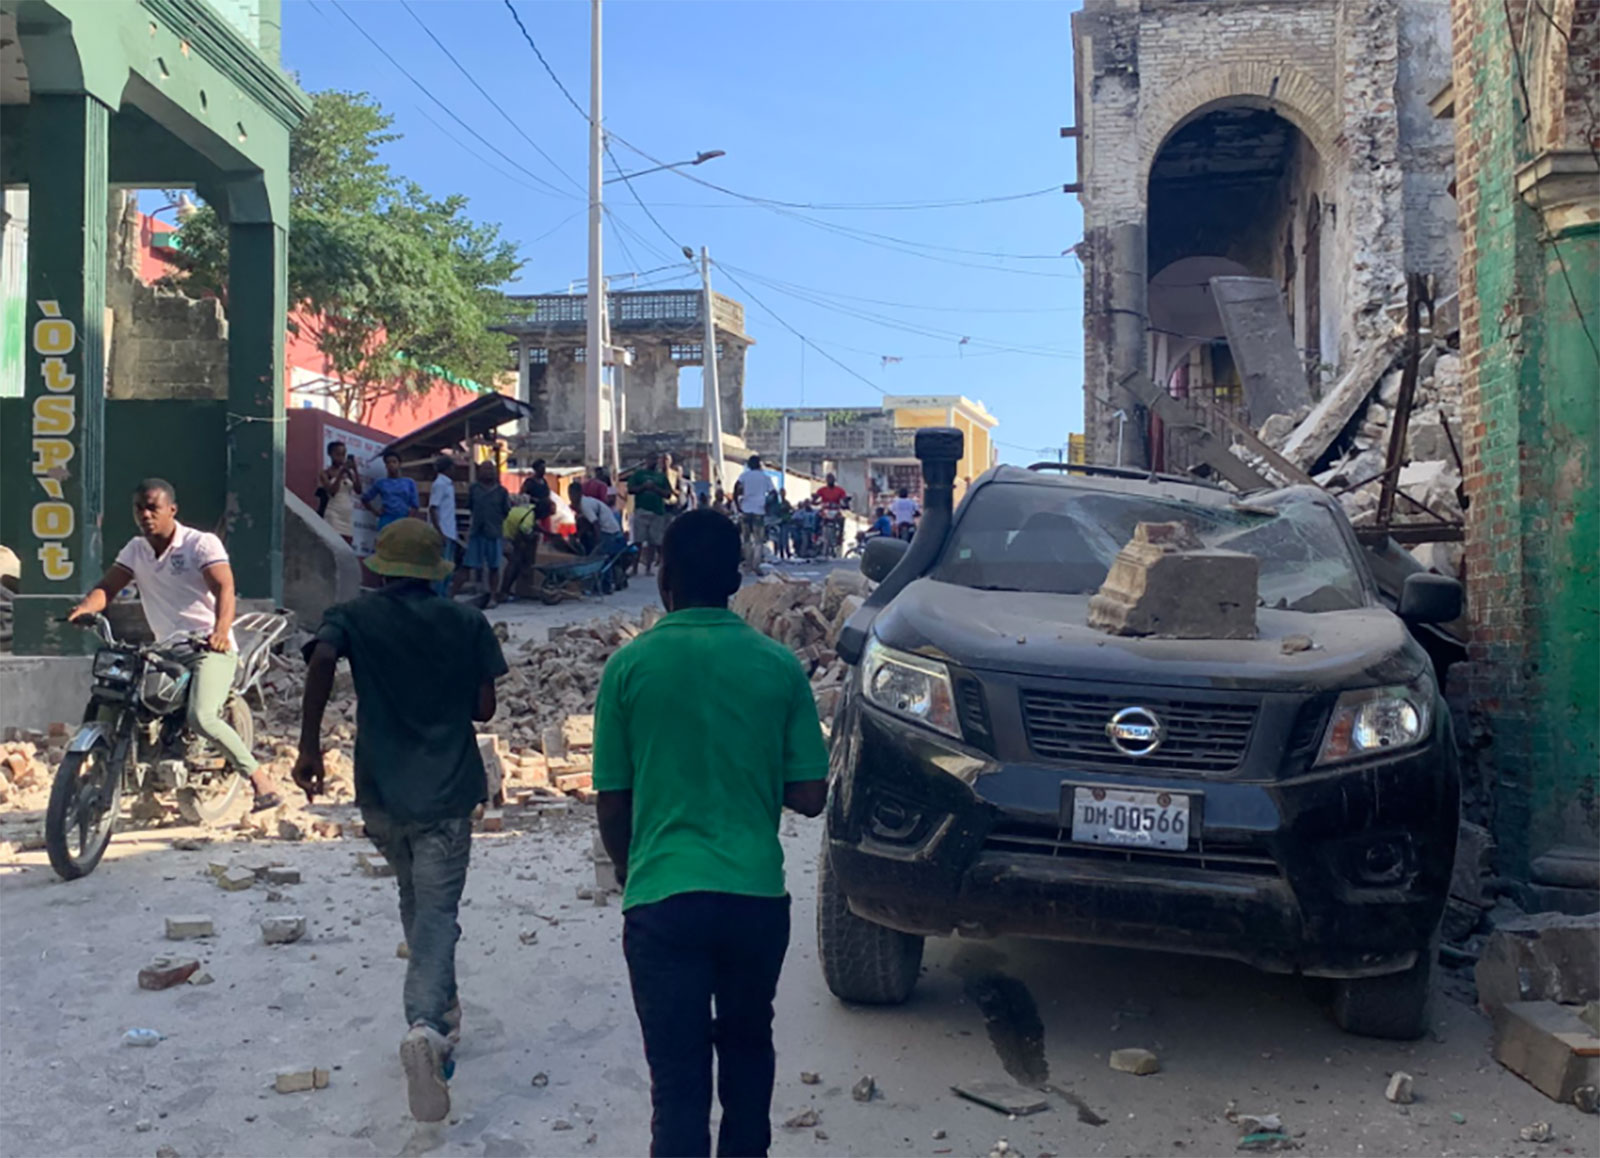 People navigate through the rubble in Les Cayes, Haiti, on August 14.